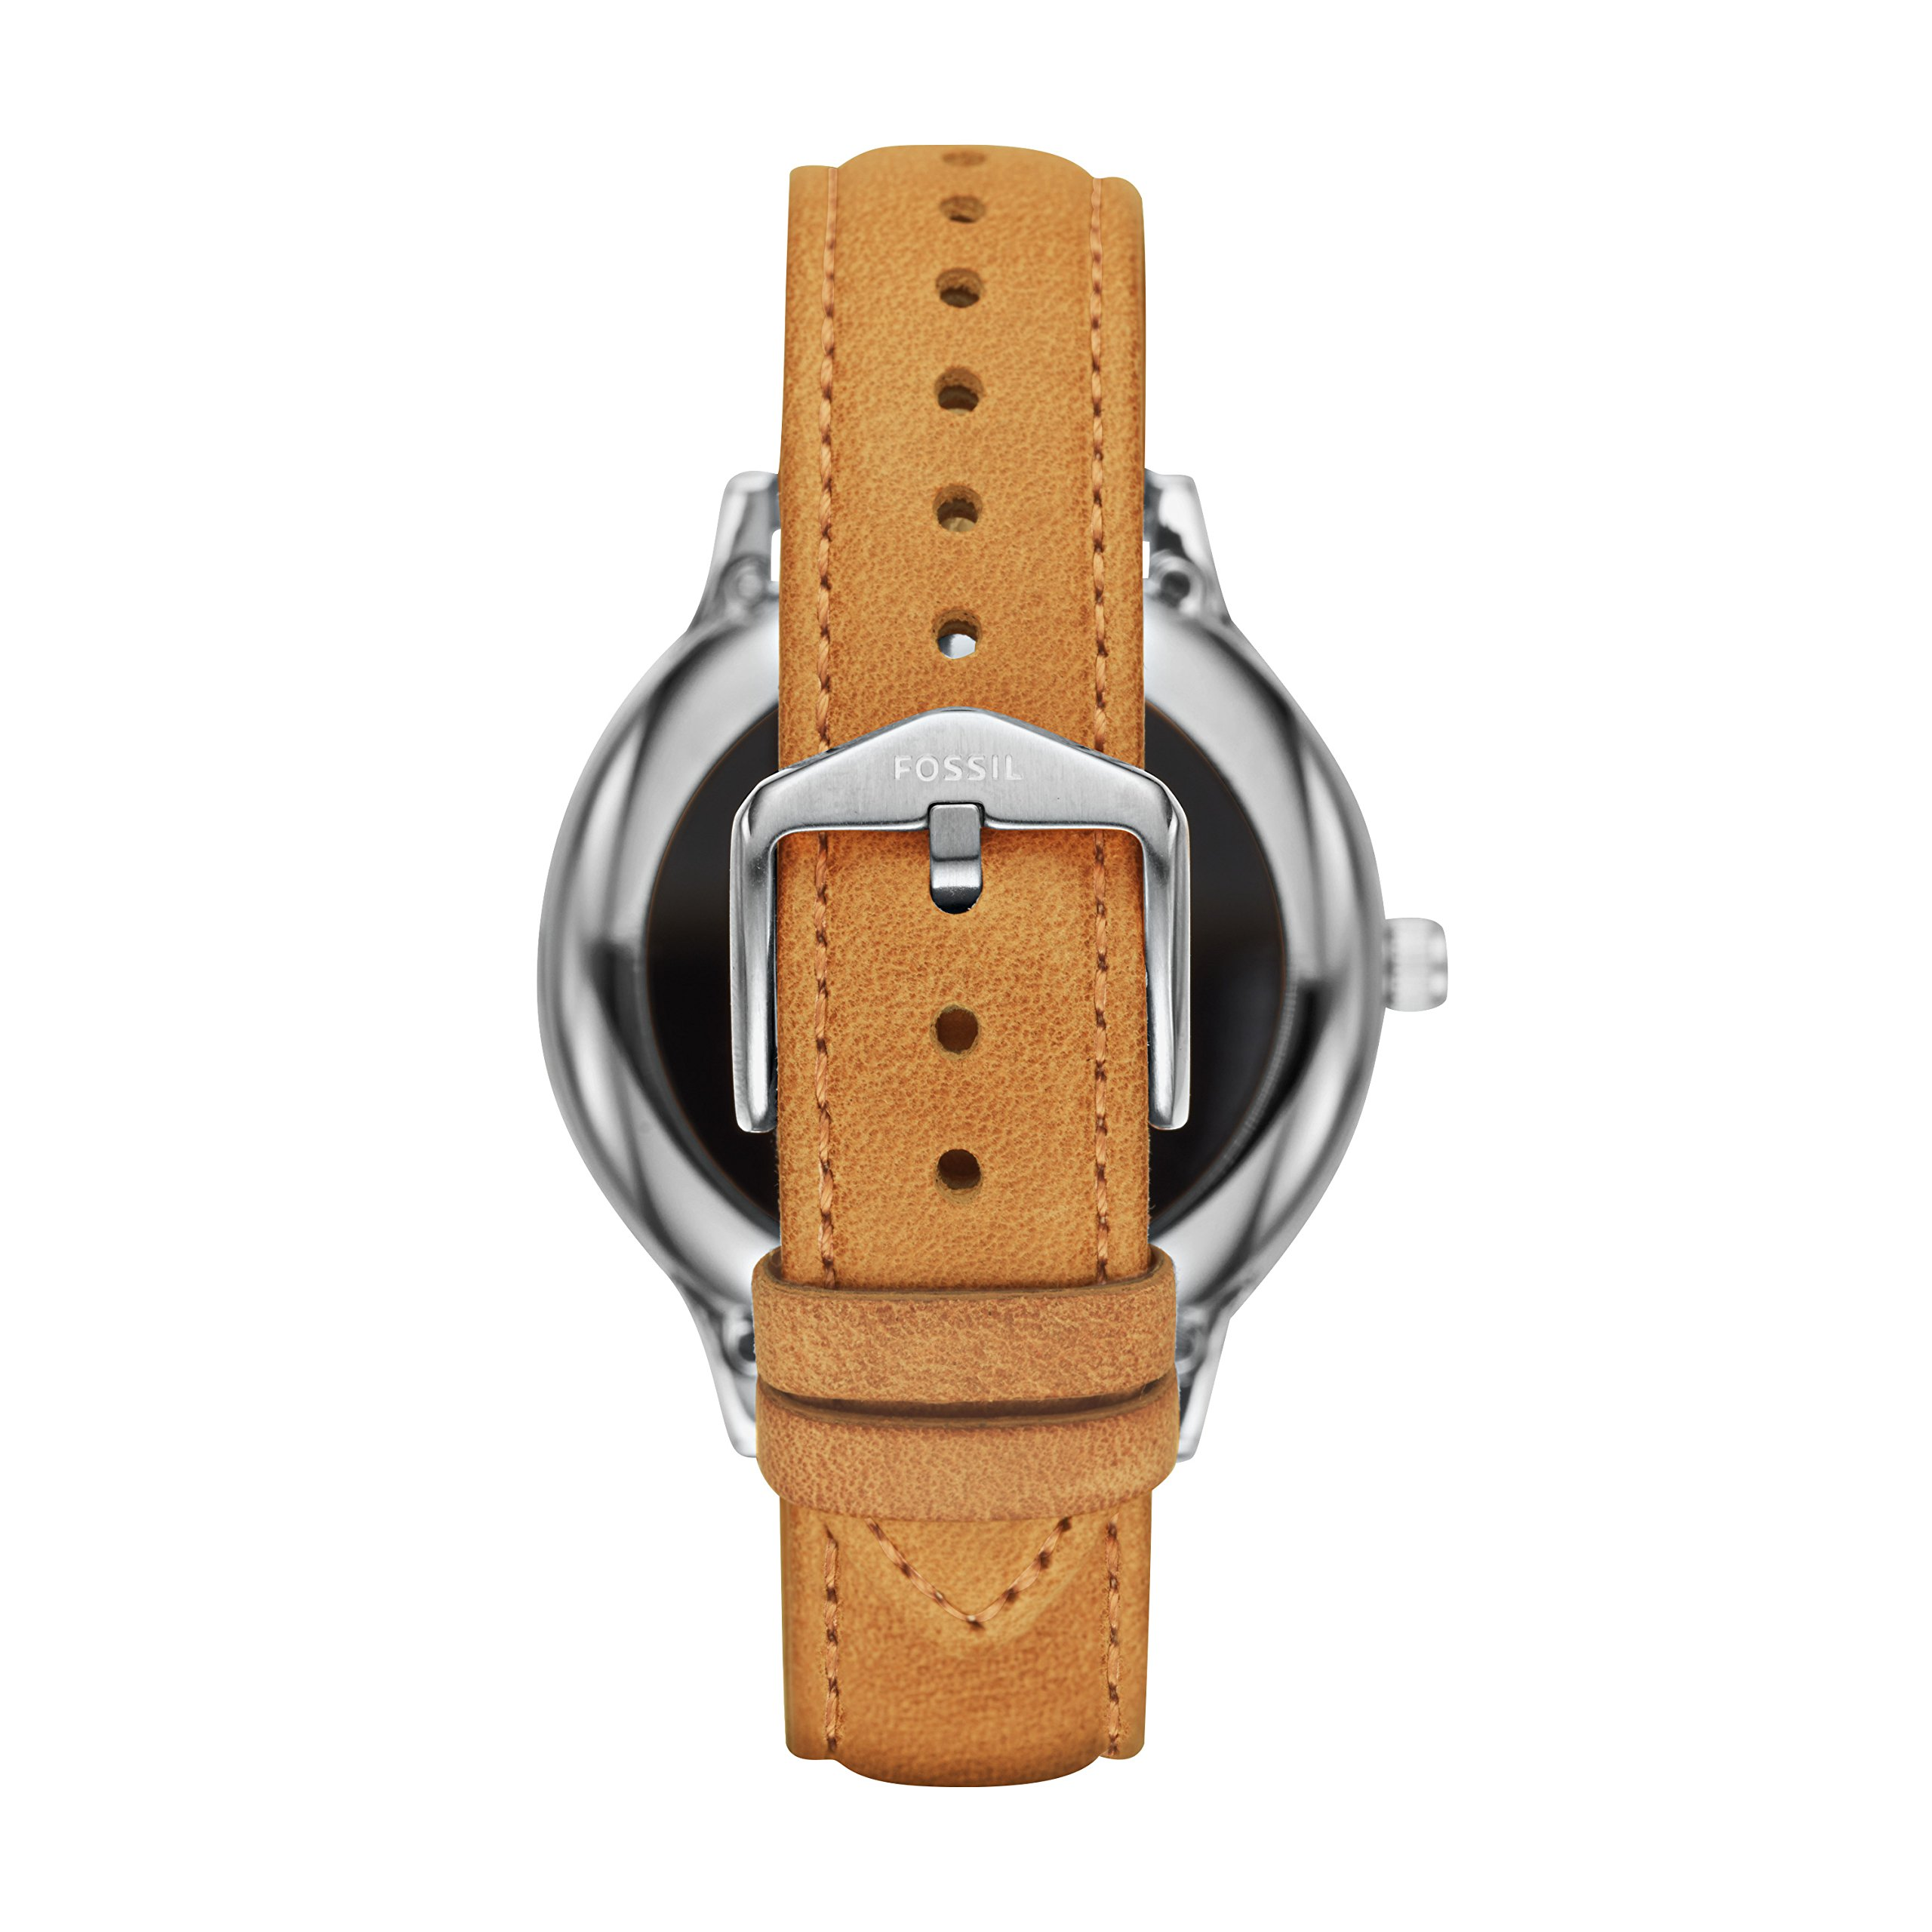 Fossil Gen 3 Smartwatch - Q Venture Luggage Leather FTW6007 by Fossil (Image #2)